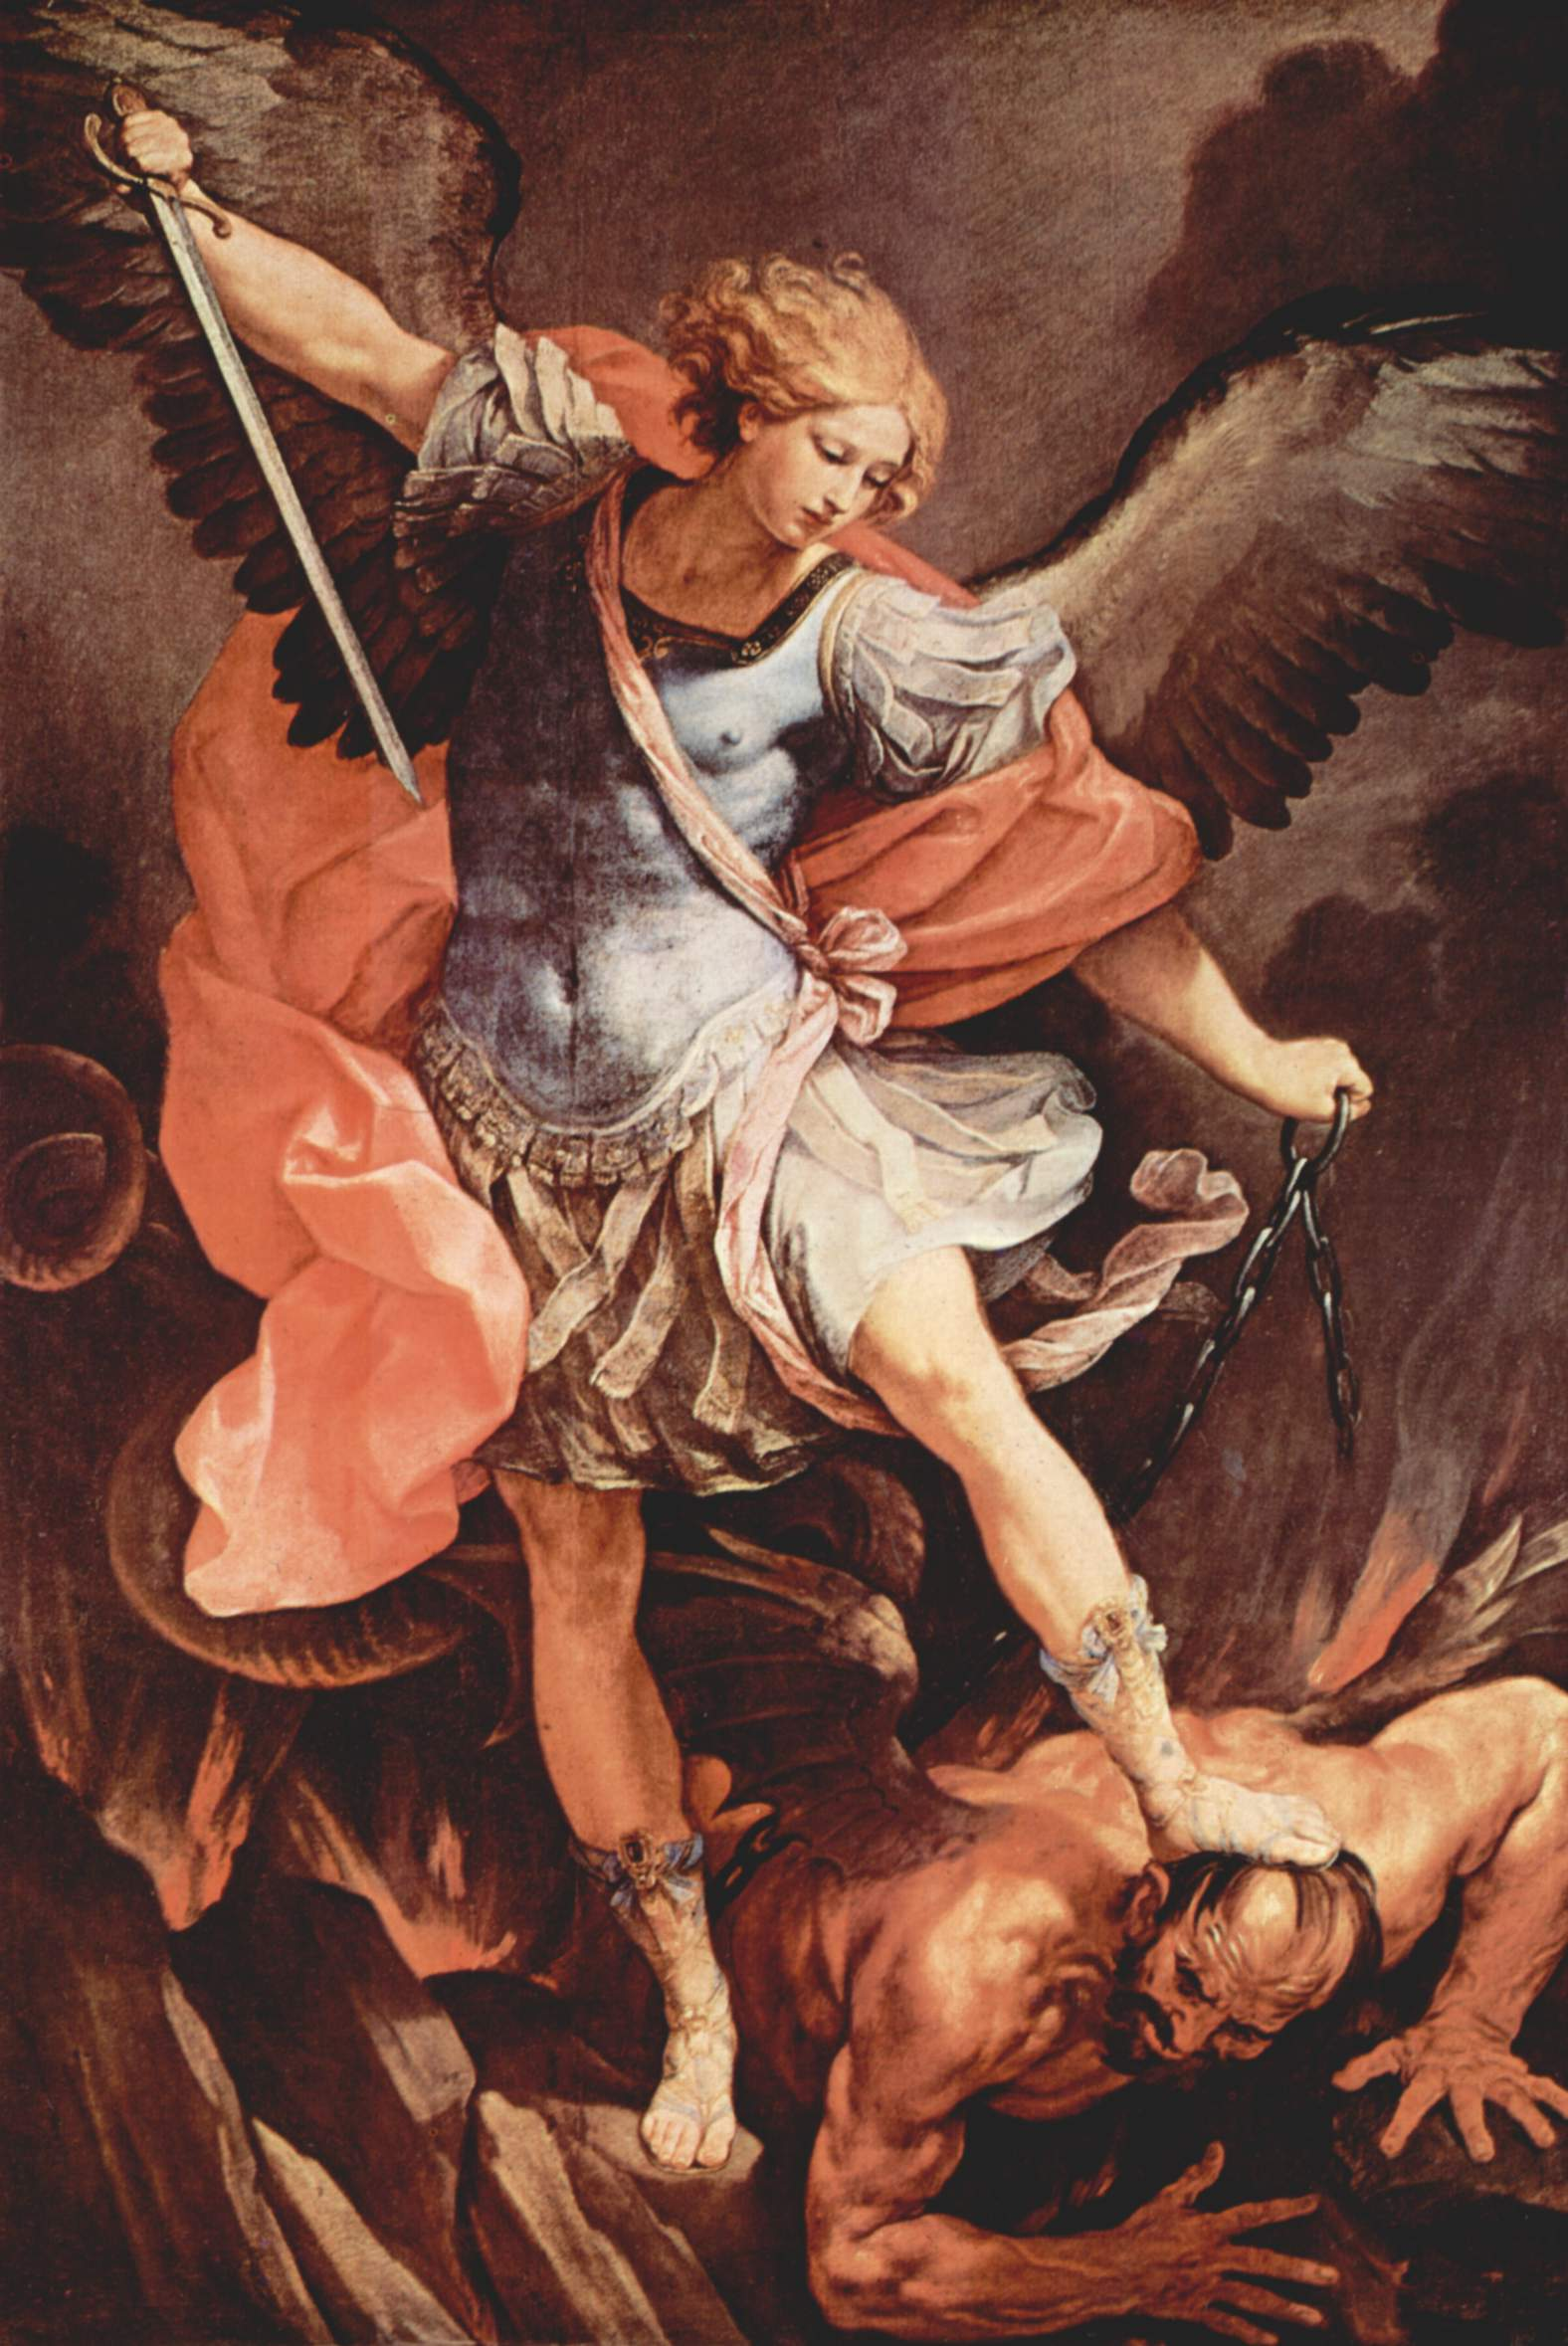 Guido Reni's conception of the Archangel Michael